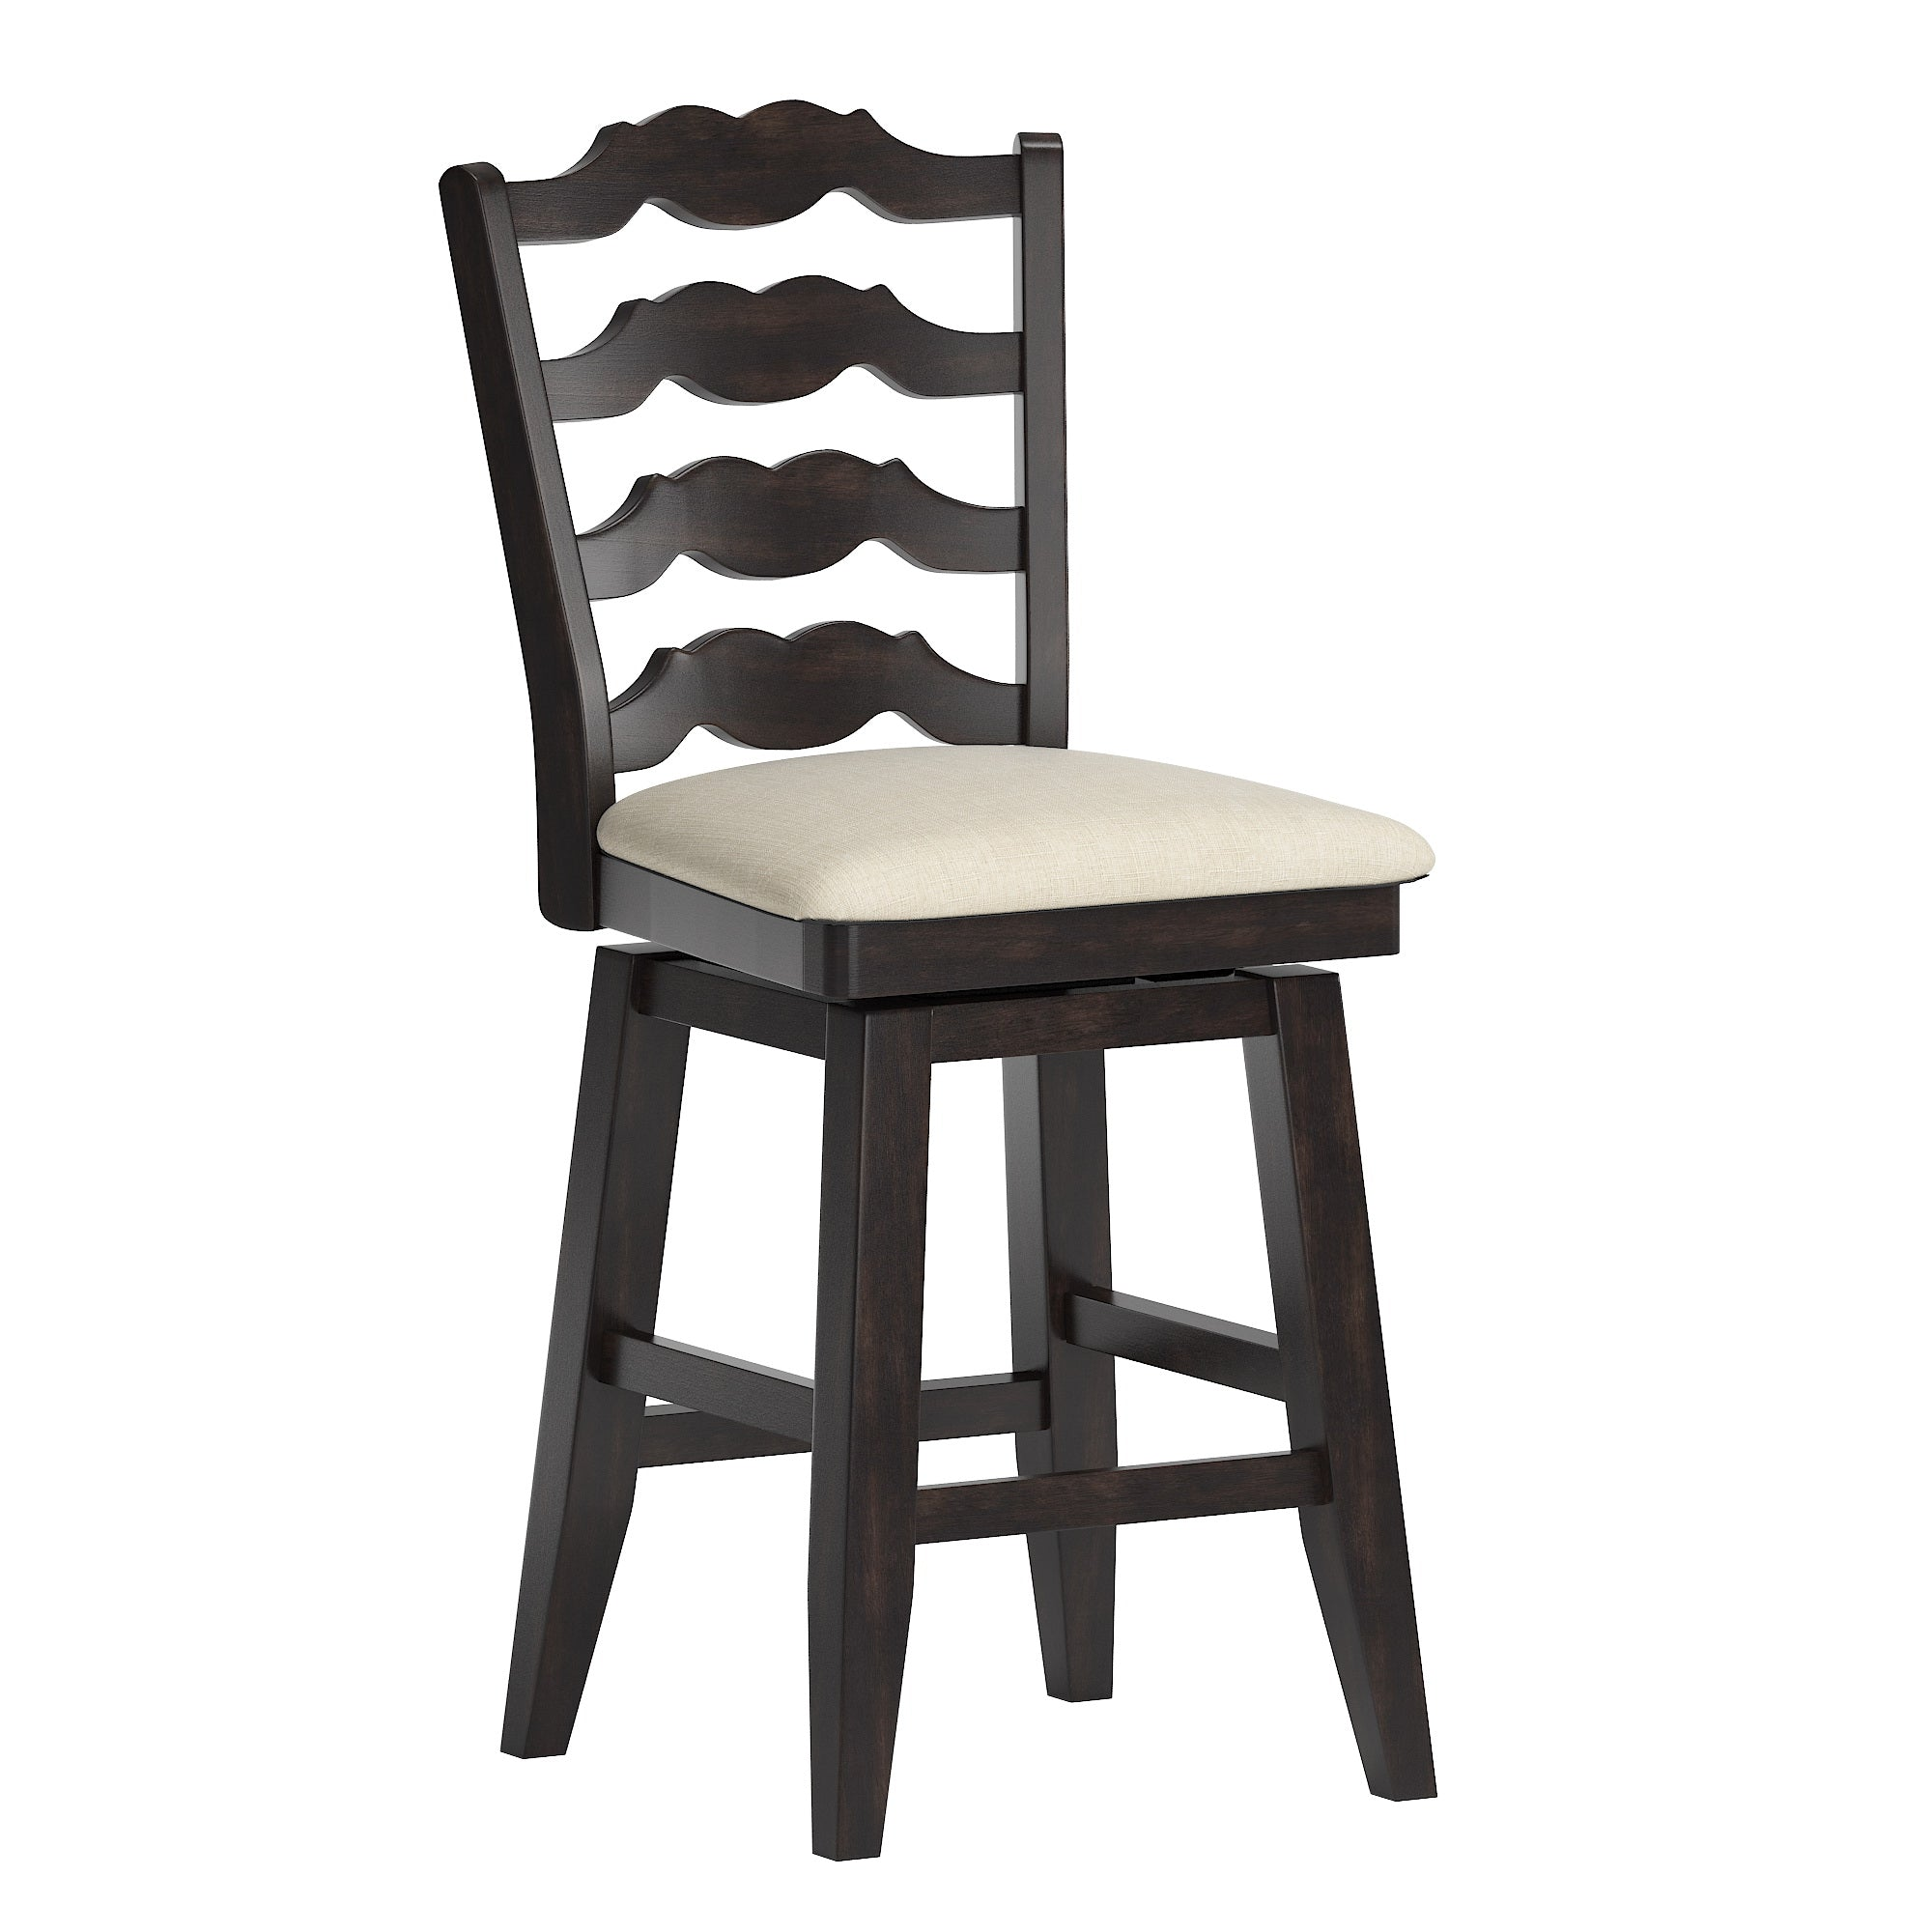 French Ladder Back Counter Height Swivel Chair - Antique Black